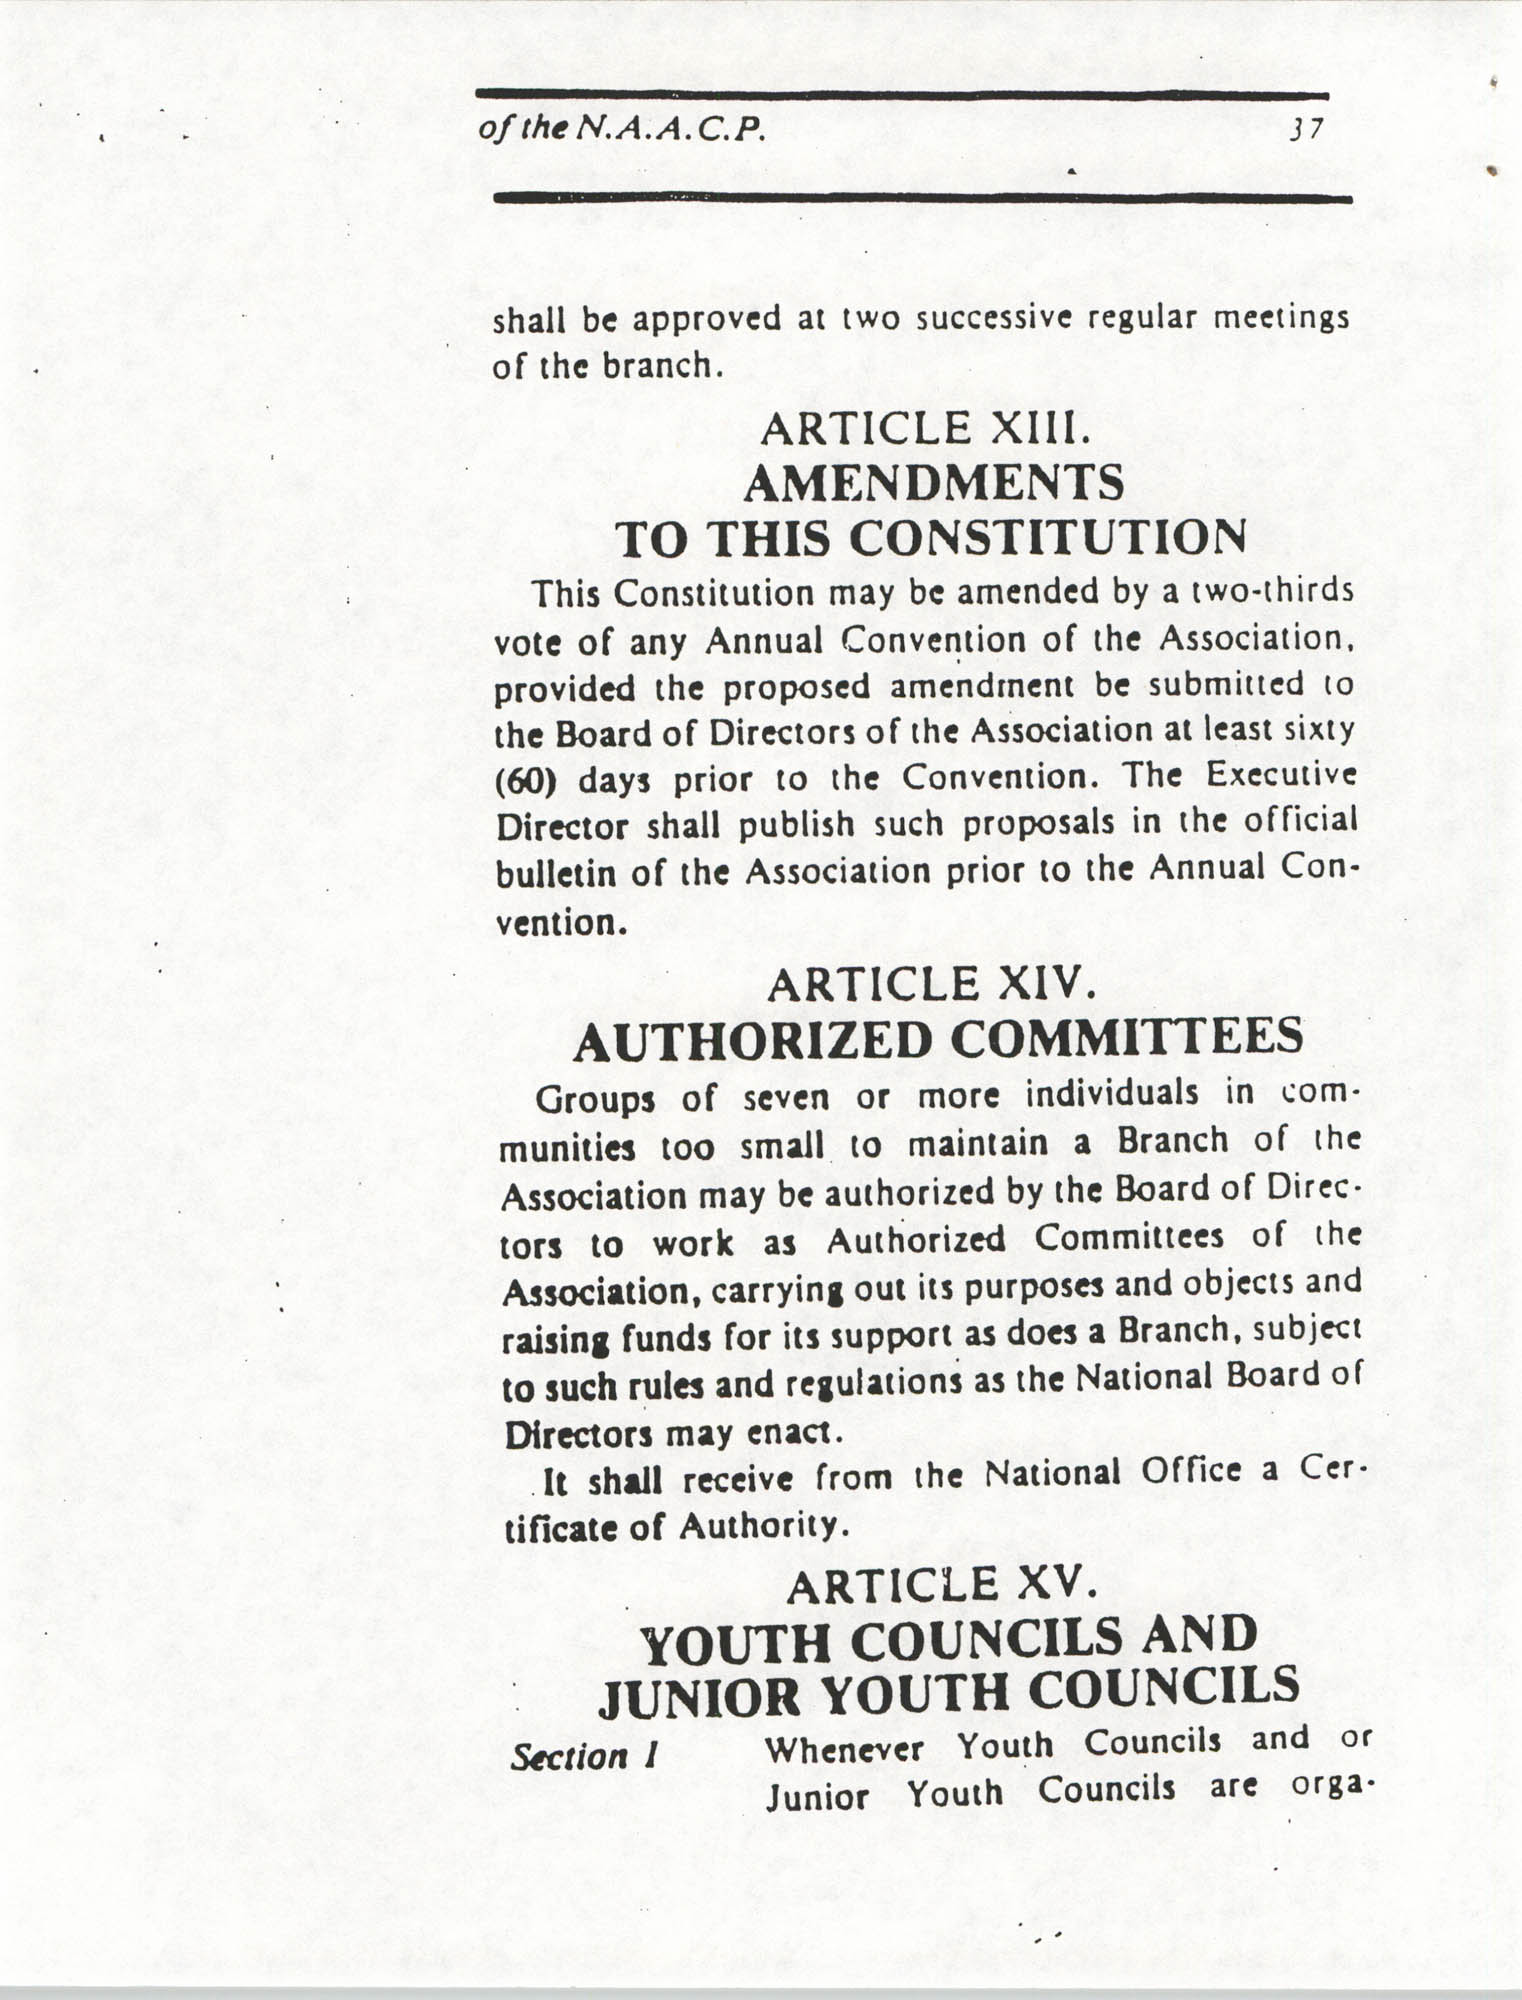 Constitution and By-Laws for Branches of the NAACP, March 1992, Page 37